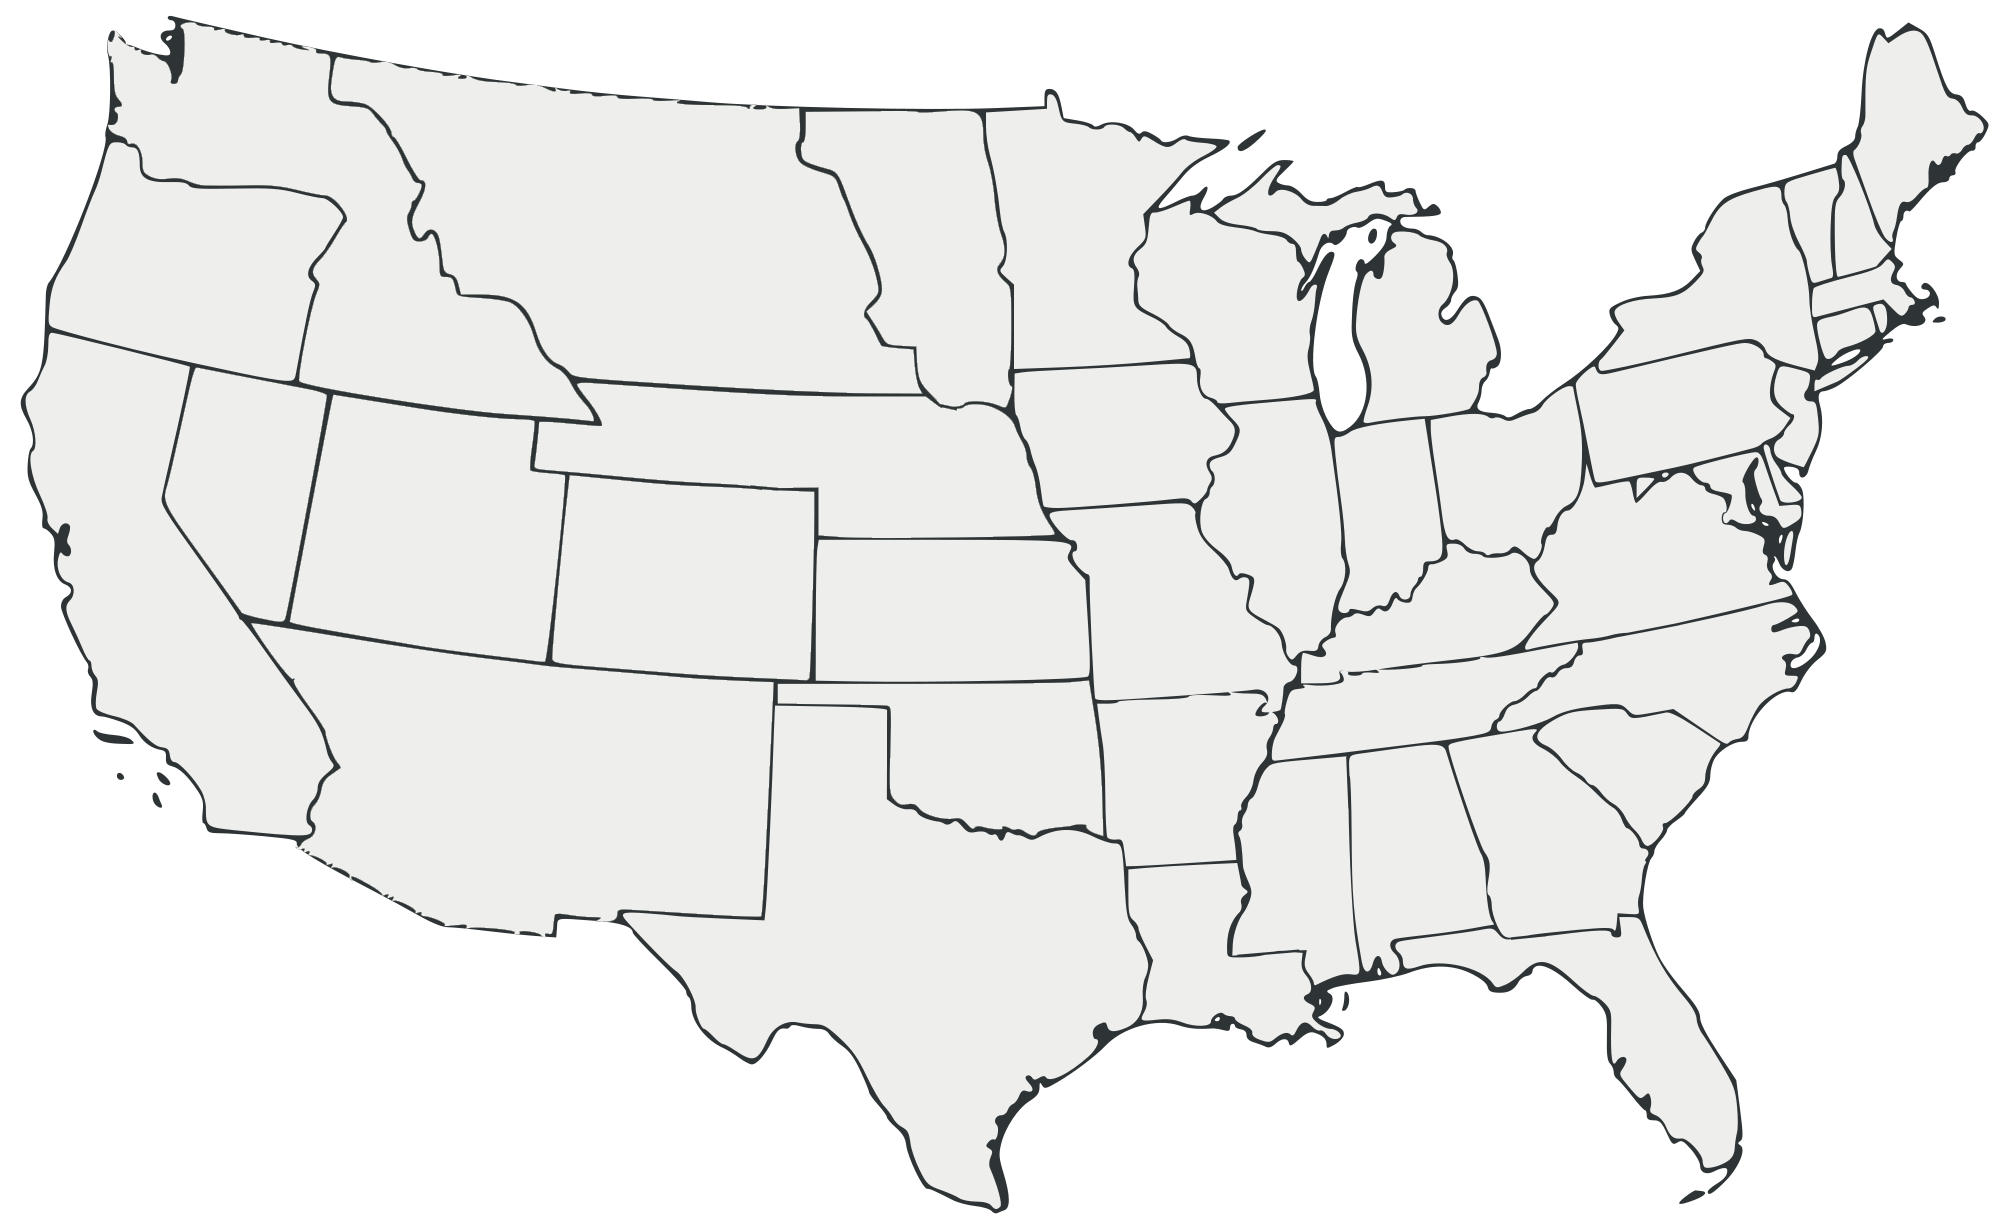 FileBlank Map Of The United States  All Whitepng Wikimedia - Blank map of the united states wikipedia